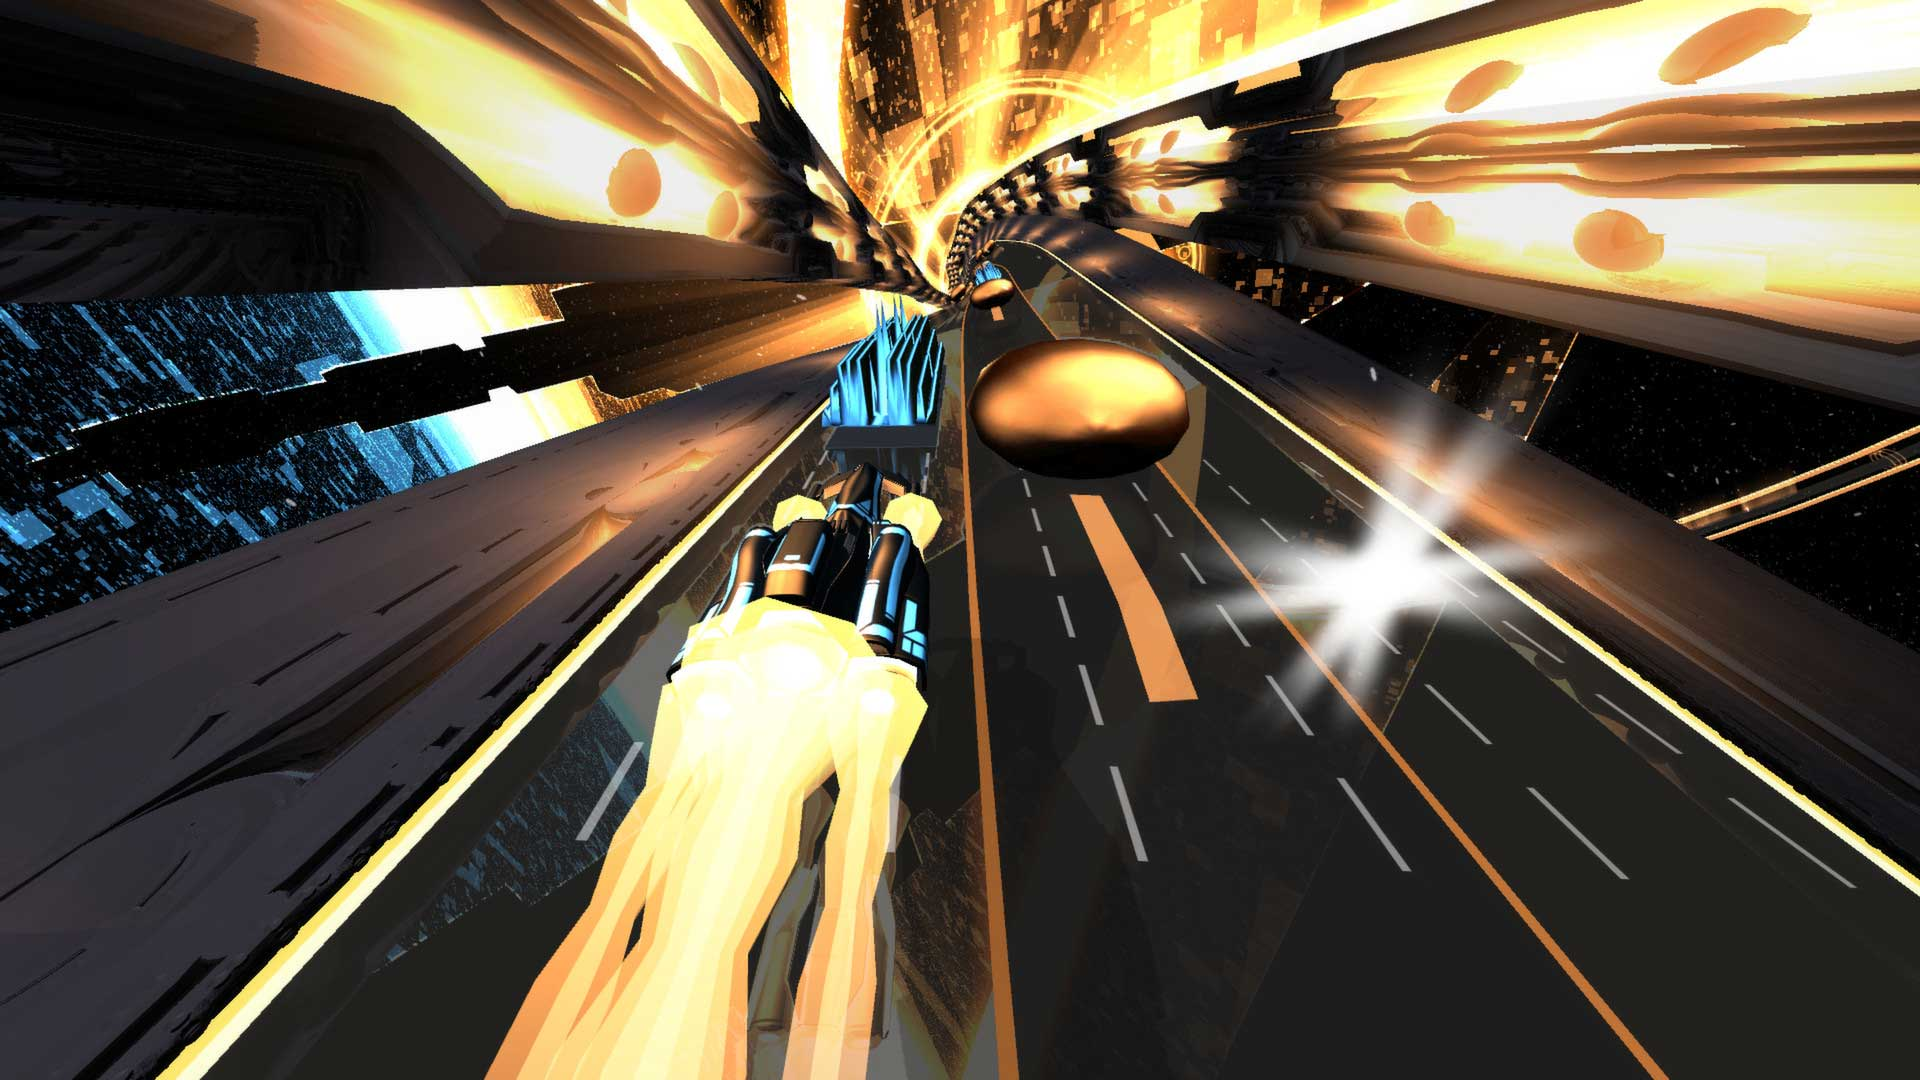 AudioSurf 2 Region Free (Steam Gift/Key)